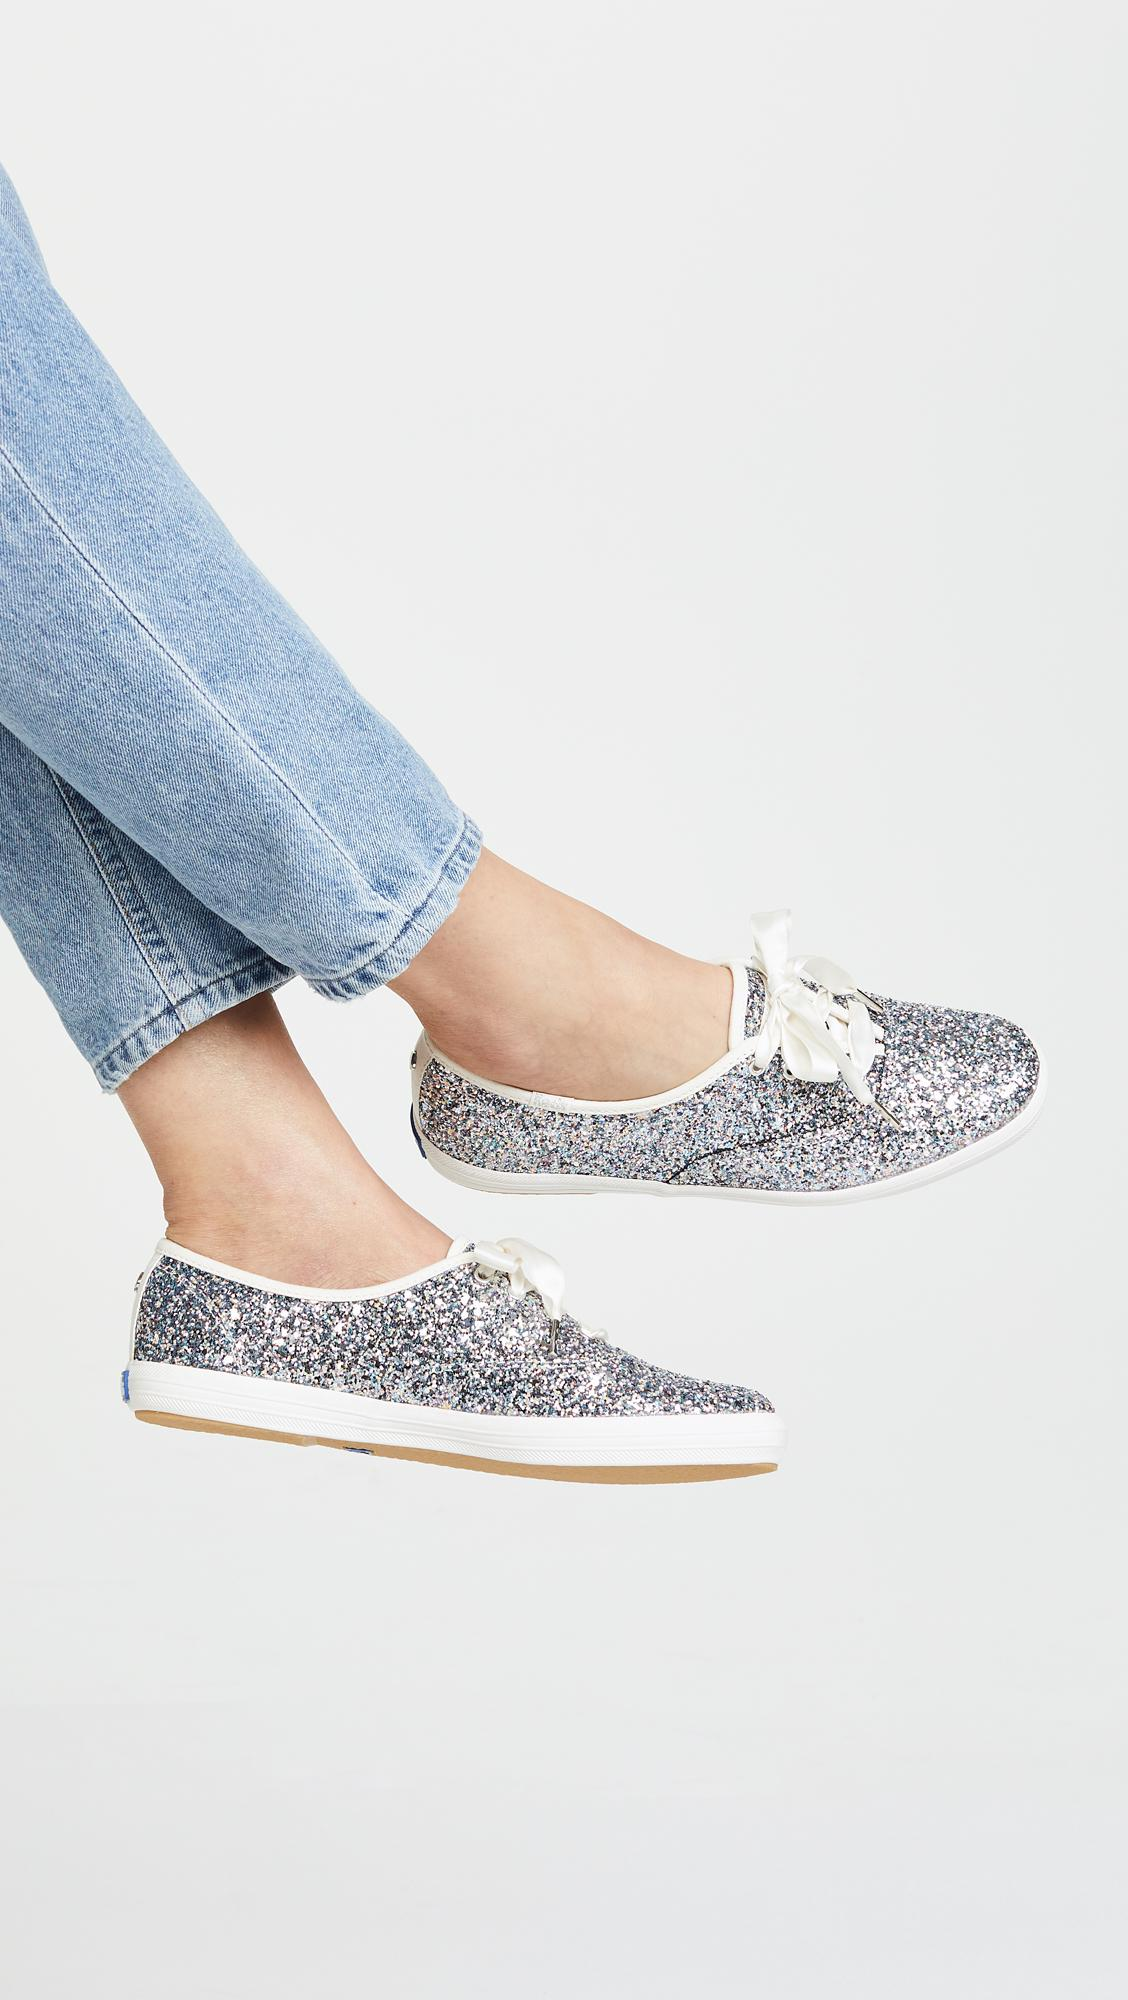 0db4f201158 Keds - Metallic X Kate Spade New York Glitter Sneakers - Lyst. View  fullscreen